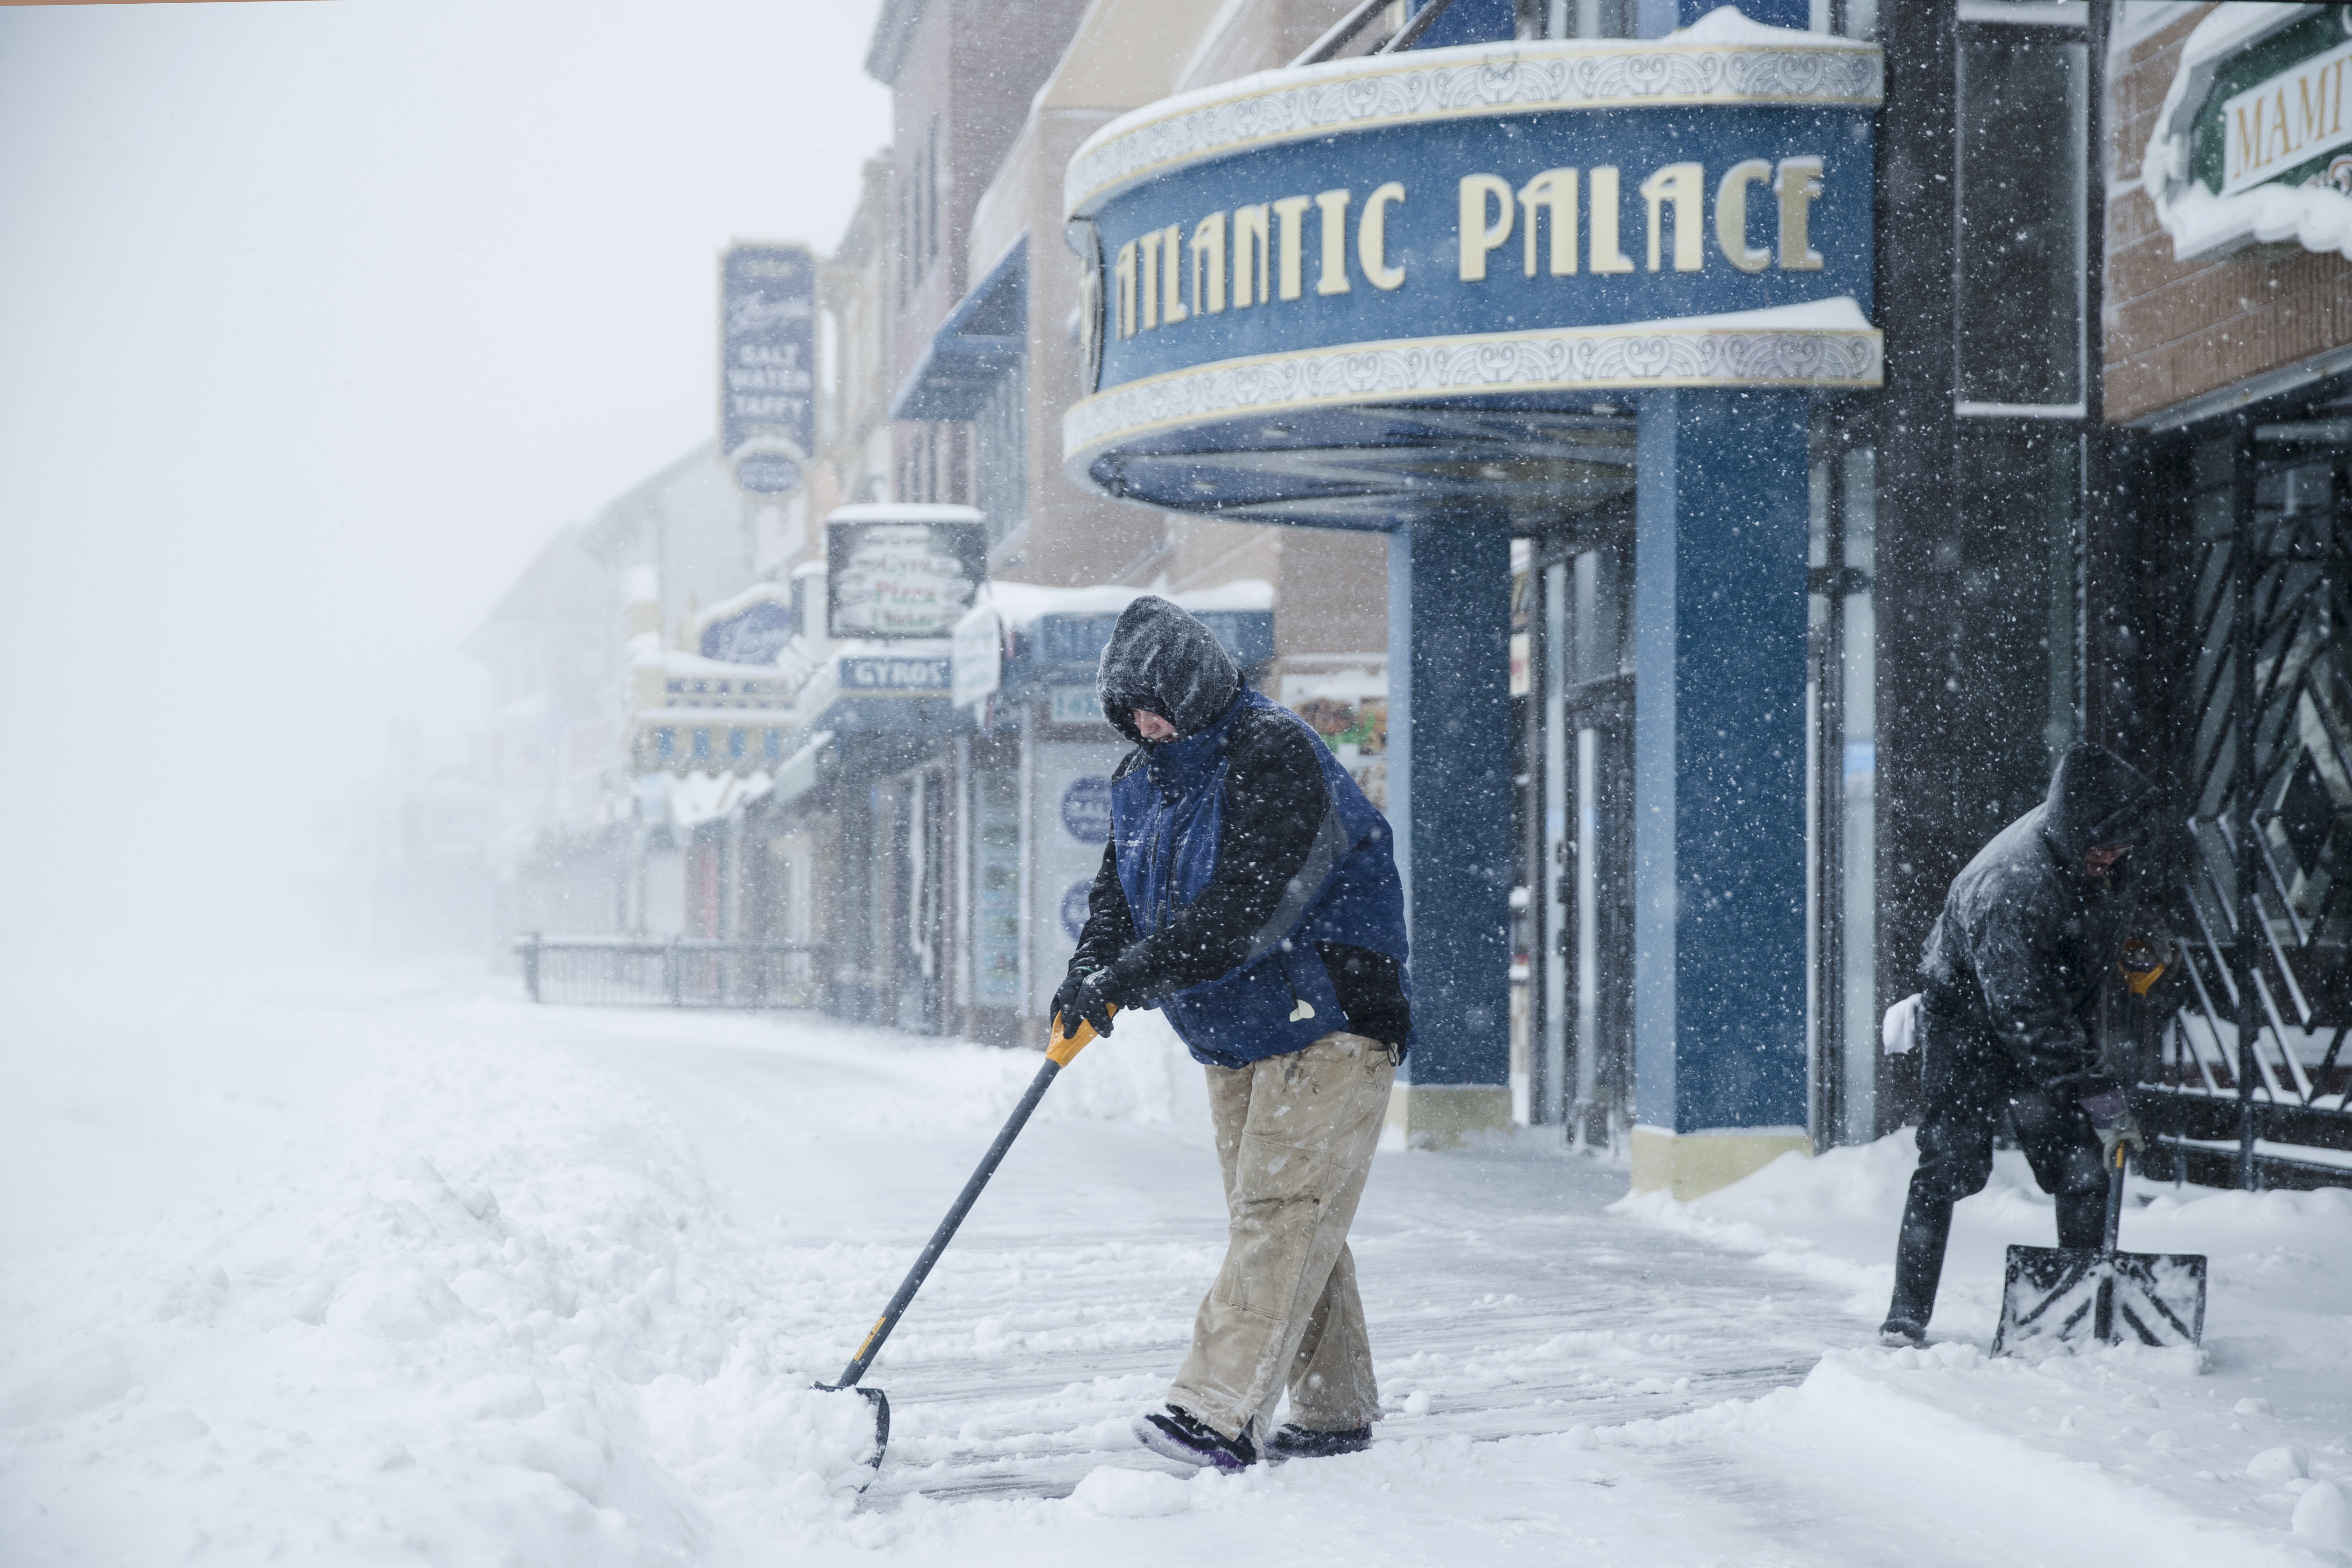 "<div class=""meta image-caption""><div class=""origin-logo origin-image none""><span>none</span></div><span class=""caption-text"">Workers clear the boardwalk during a winter snowstorm in Atlantic City, N.J., Thursday, Jan. 4, 2018. (AP Photo/Matt Rourke) (AP)</span></div>"